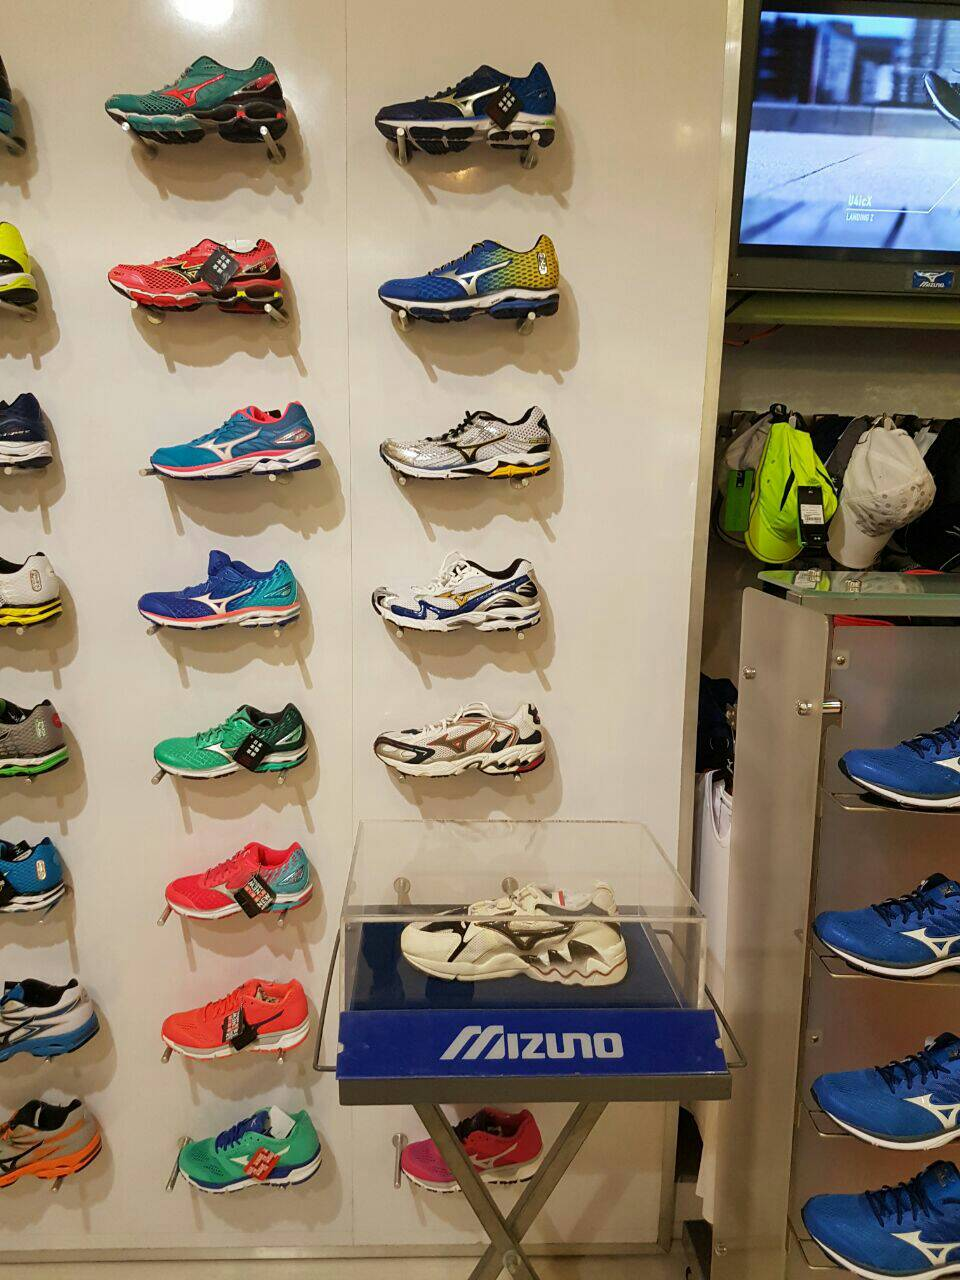 mizuno shops in manila